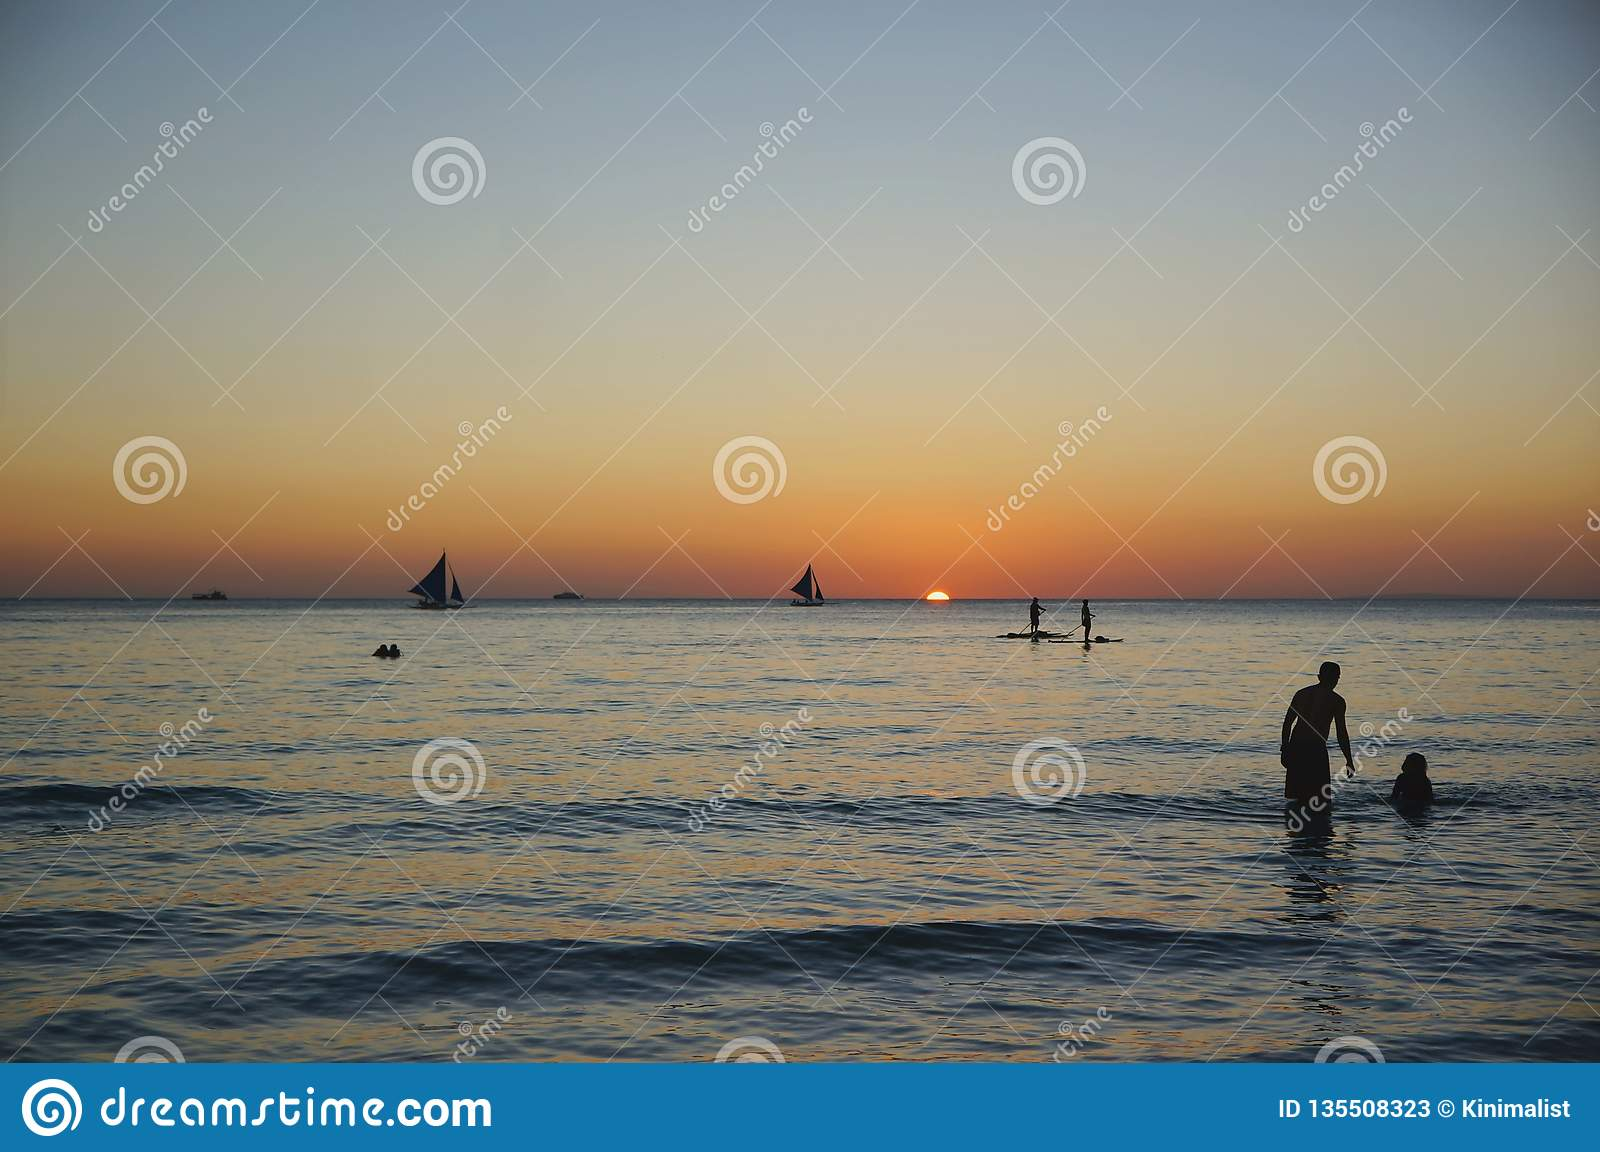 Romantic Sunset Beach Travel For Honeymoon Vacation Fun Summer In